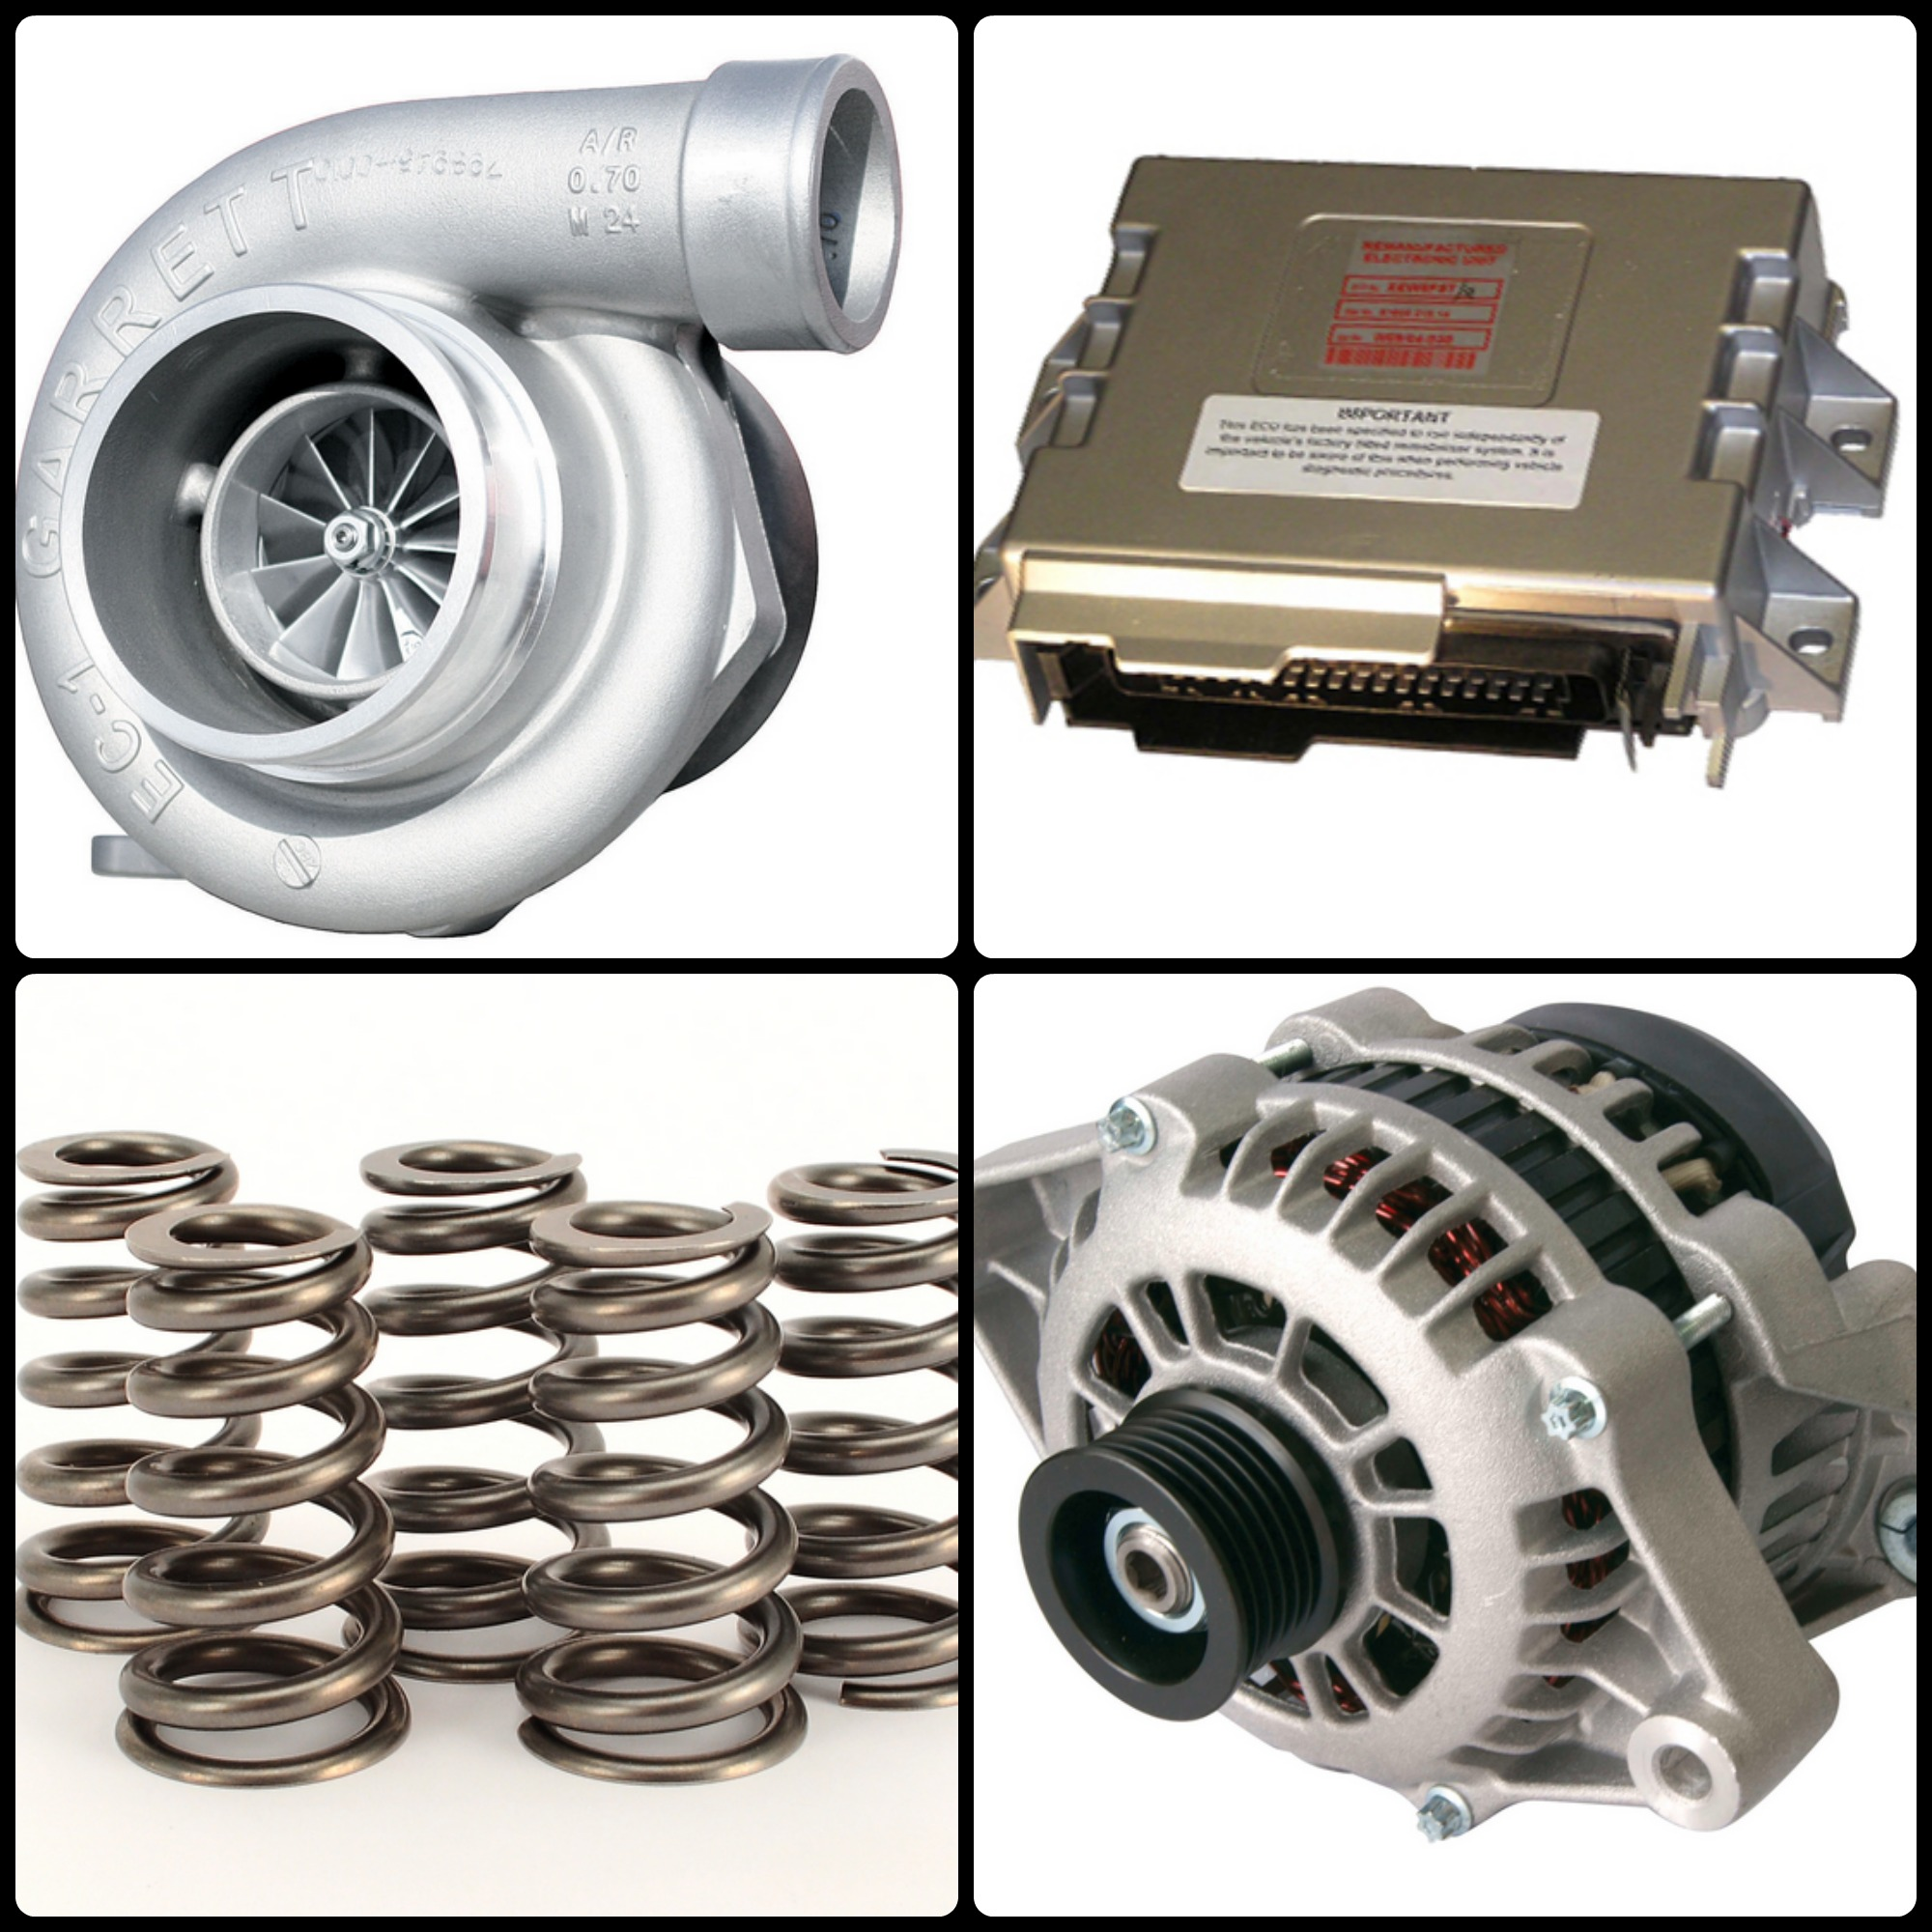 Sayarty : Turbocharger on parts of car insurance, parts of car body, parts of car exhaust, parts of toys, parts of a car under the hood, parts of car seat, parts of chemicals, parts of car tire, parts of glass, parts of car air conditioning system, parts of car interior, parts of car tyres, custom muscle cars with big engine, parts of car exterior, parts of car ignition, parts of vehicle, parts of car steering, parts of car brake system, parts of energy, parts of car ac system,